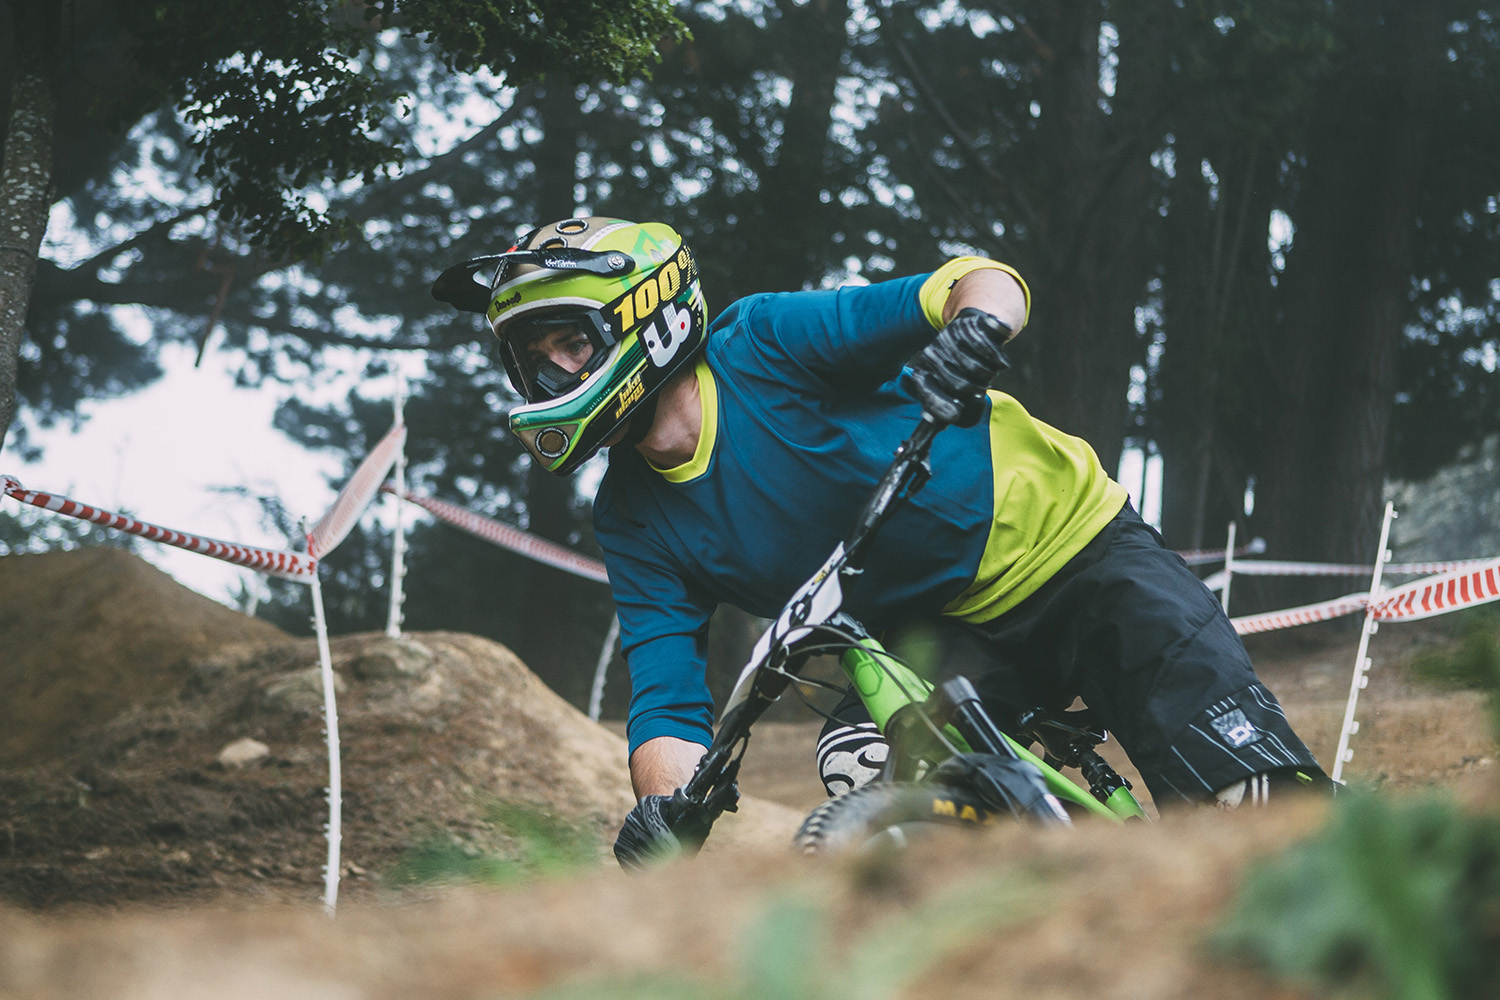 Local Jayden Toomey in the groomed berms of 'Jump Track'.